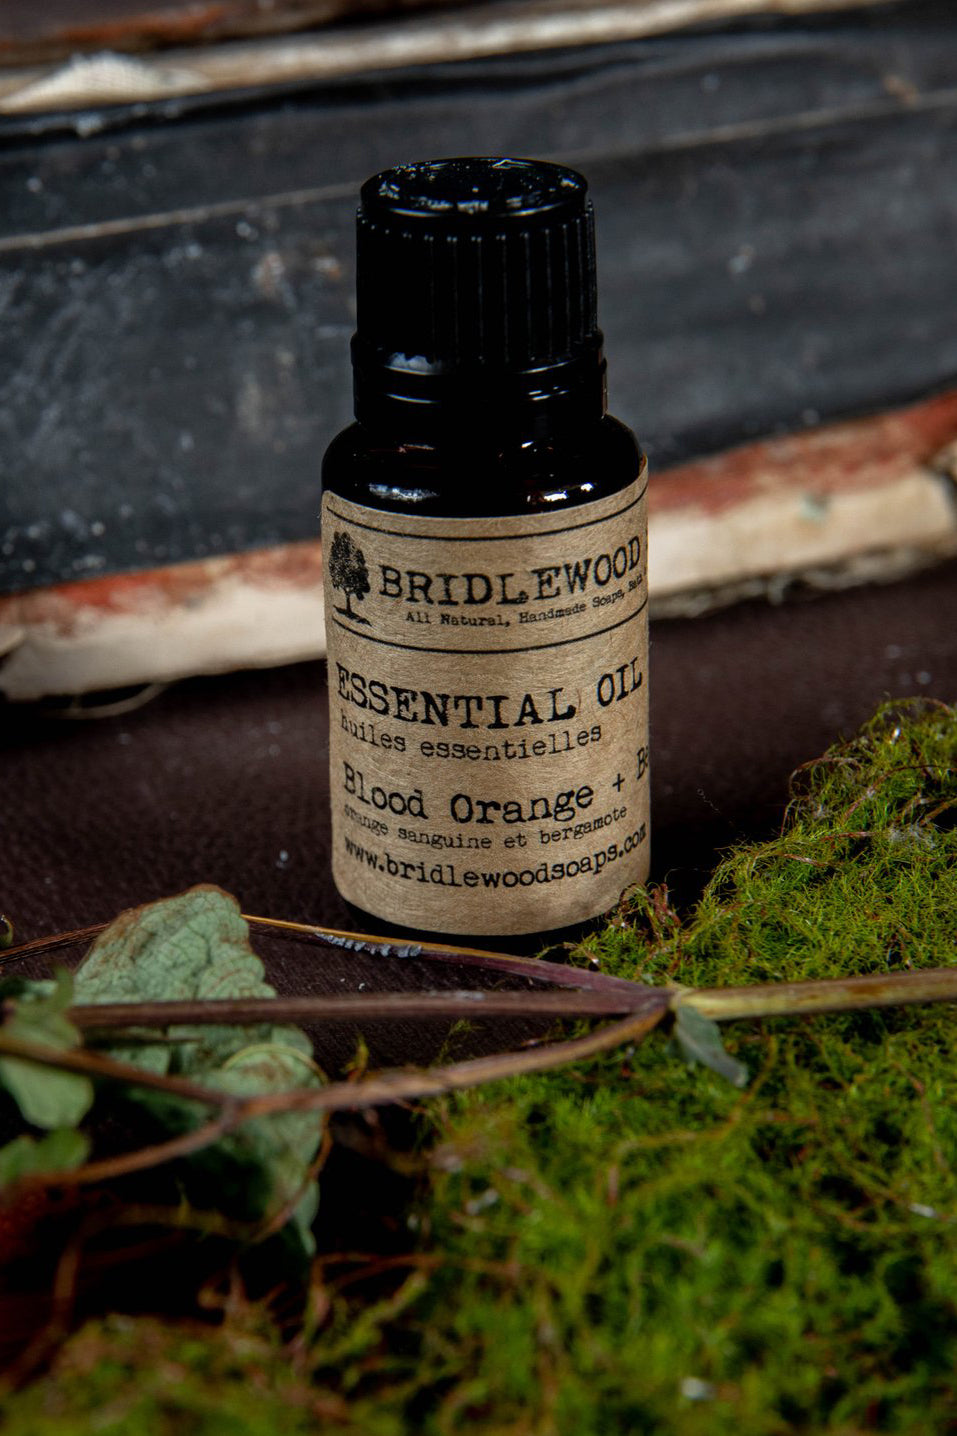 BRIDLEWOOD SOAPS Essential Oil Blends - Blood Orange & Bergamot